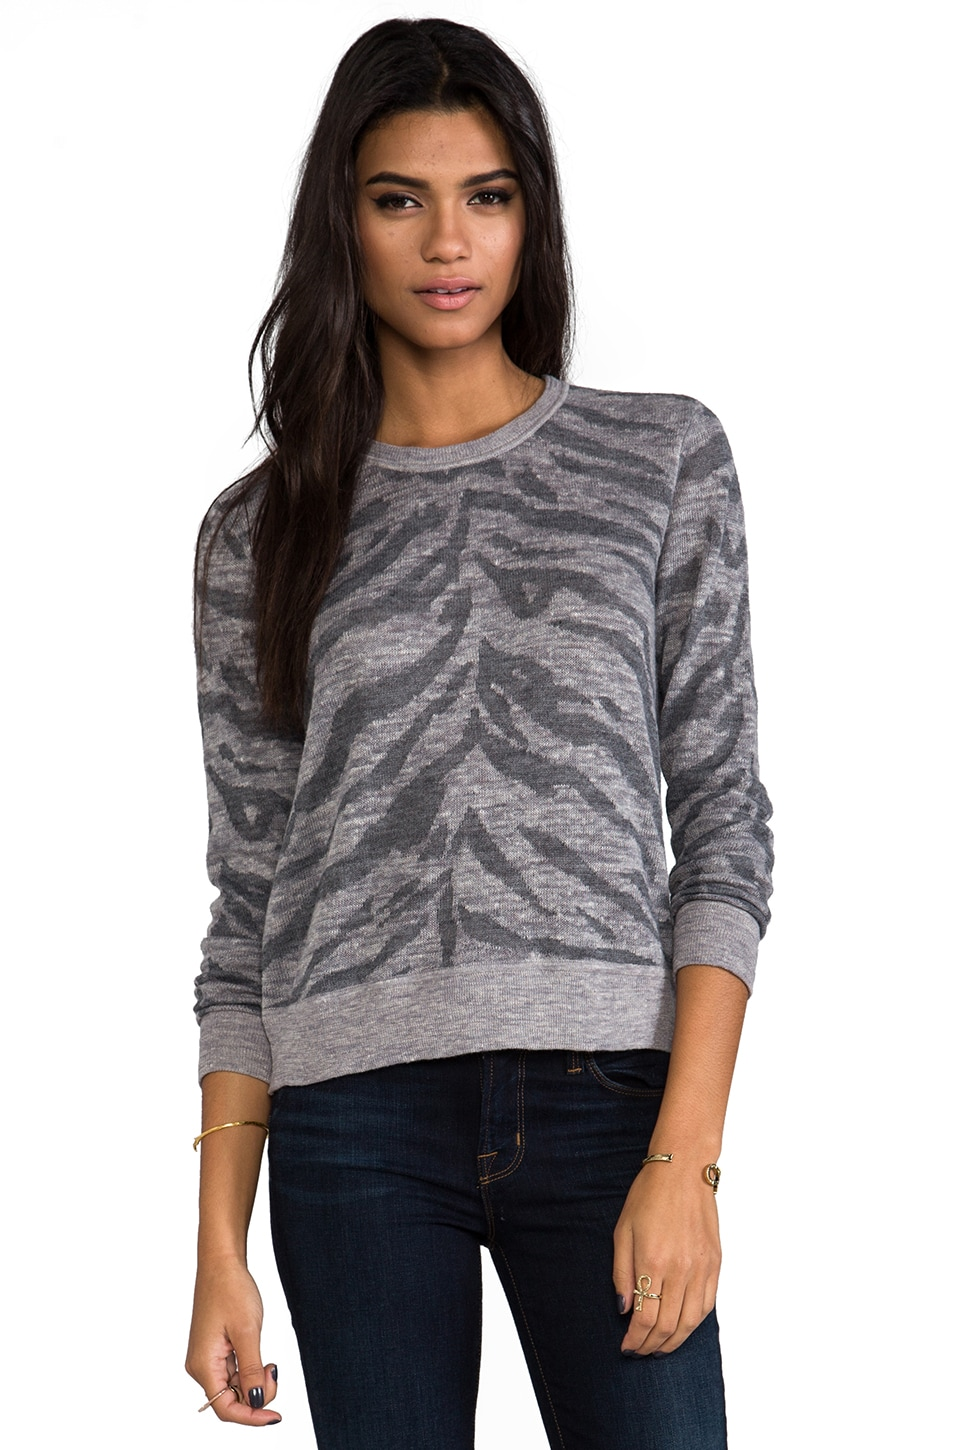 Rebecca Taylor Zebra Pullover in Grey & Charcoal